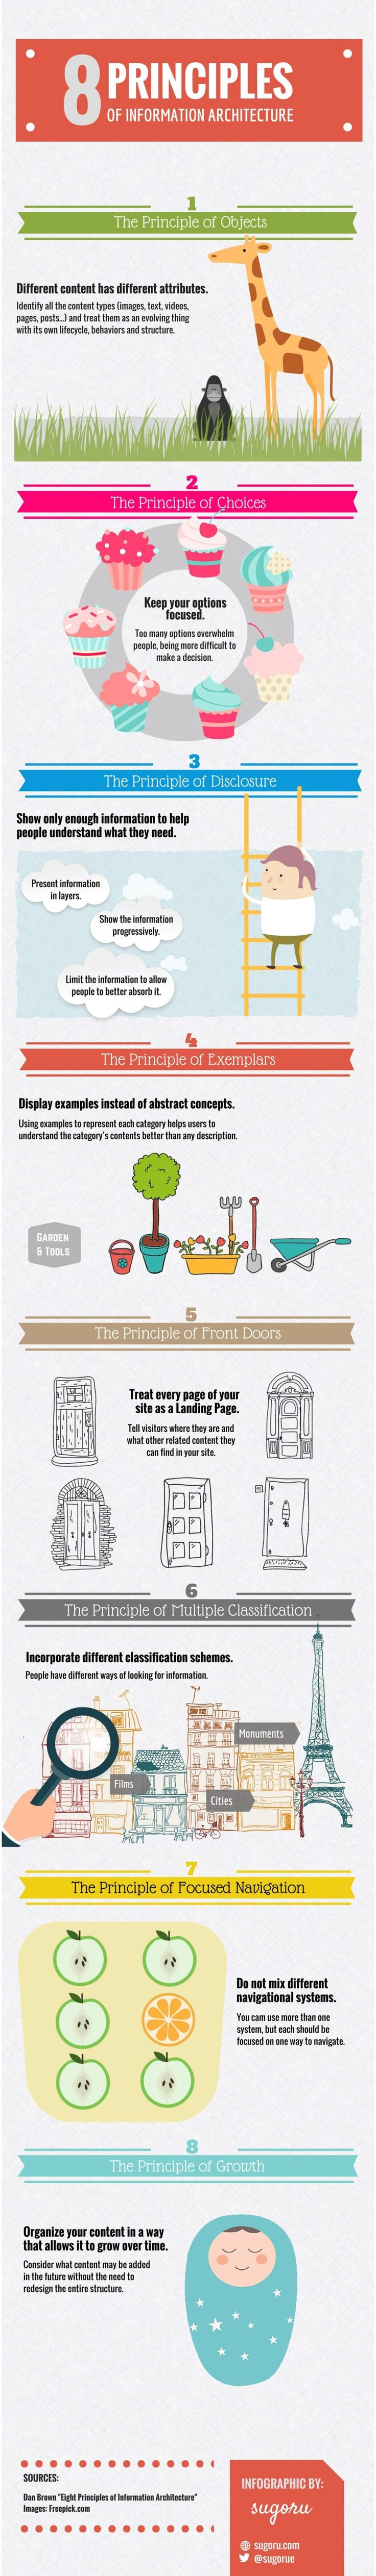 Eight Principles of Information Architecture #Infographic